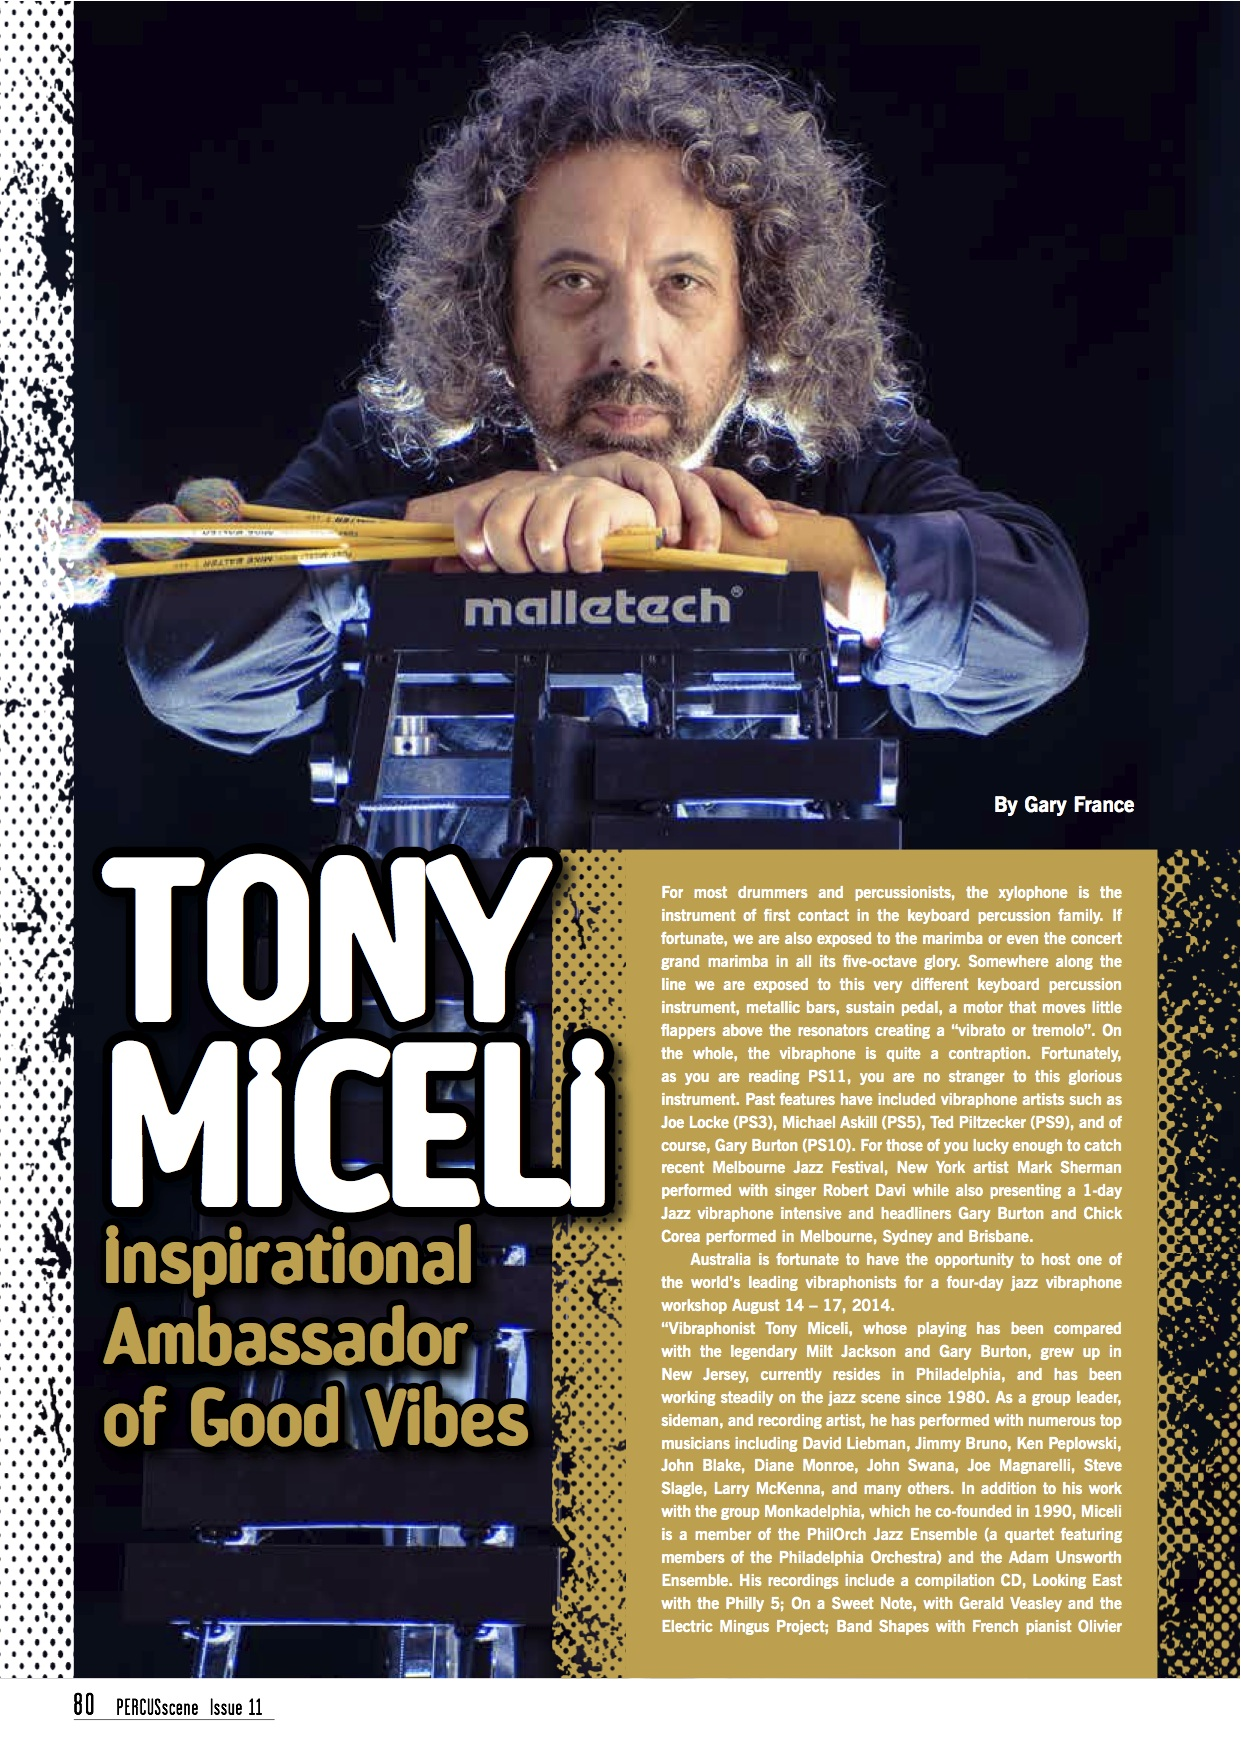 Tony Miceli: Inspirational Ambassador of Good Vibes